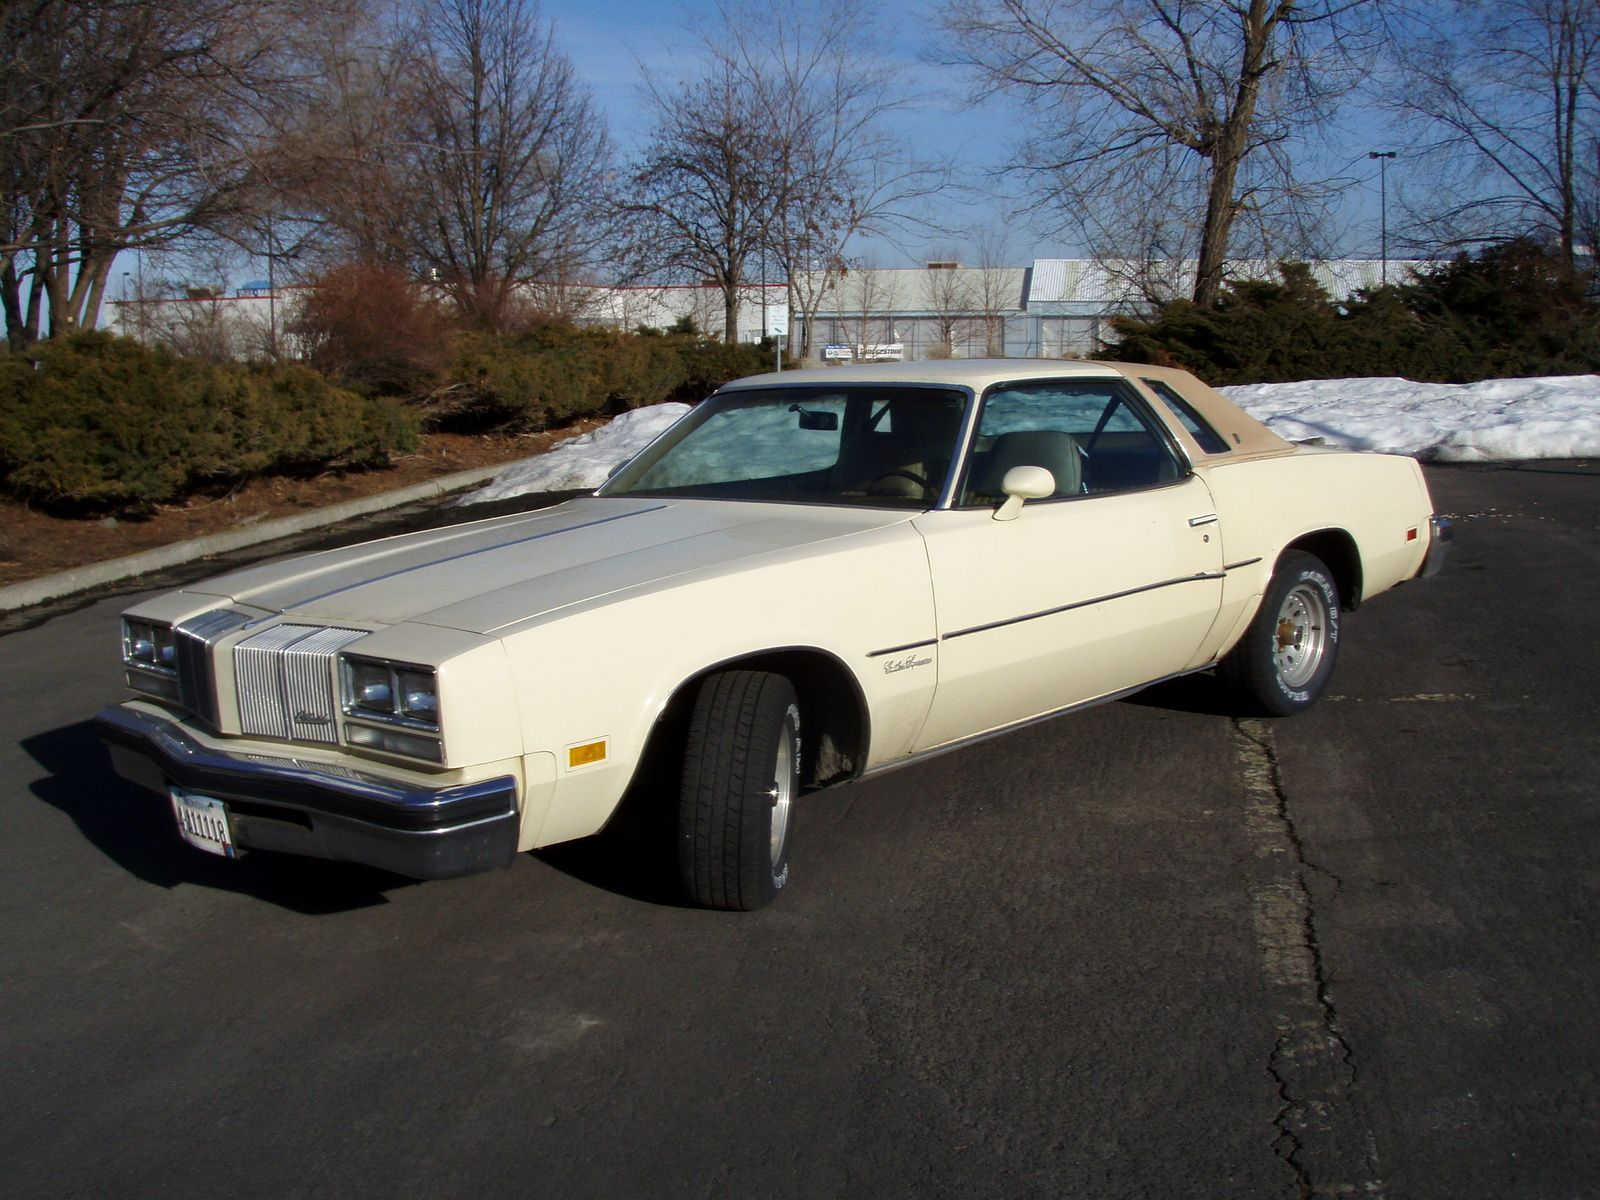 My first car was a 1977 oldsmobile cutlass supreme same color except light blue